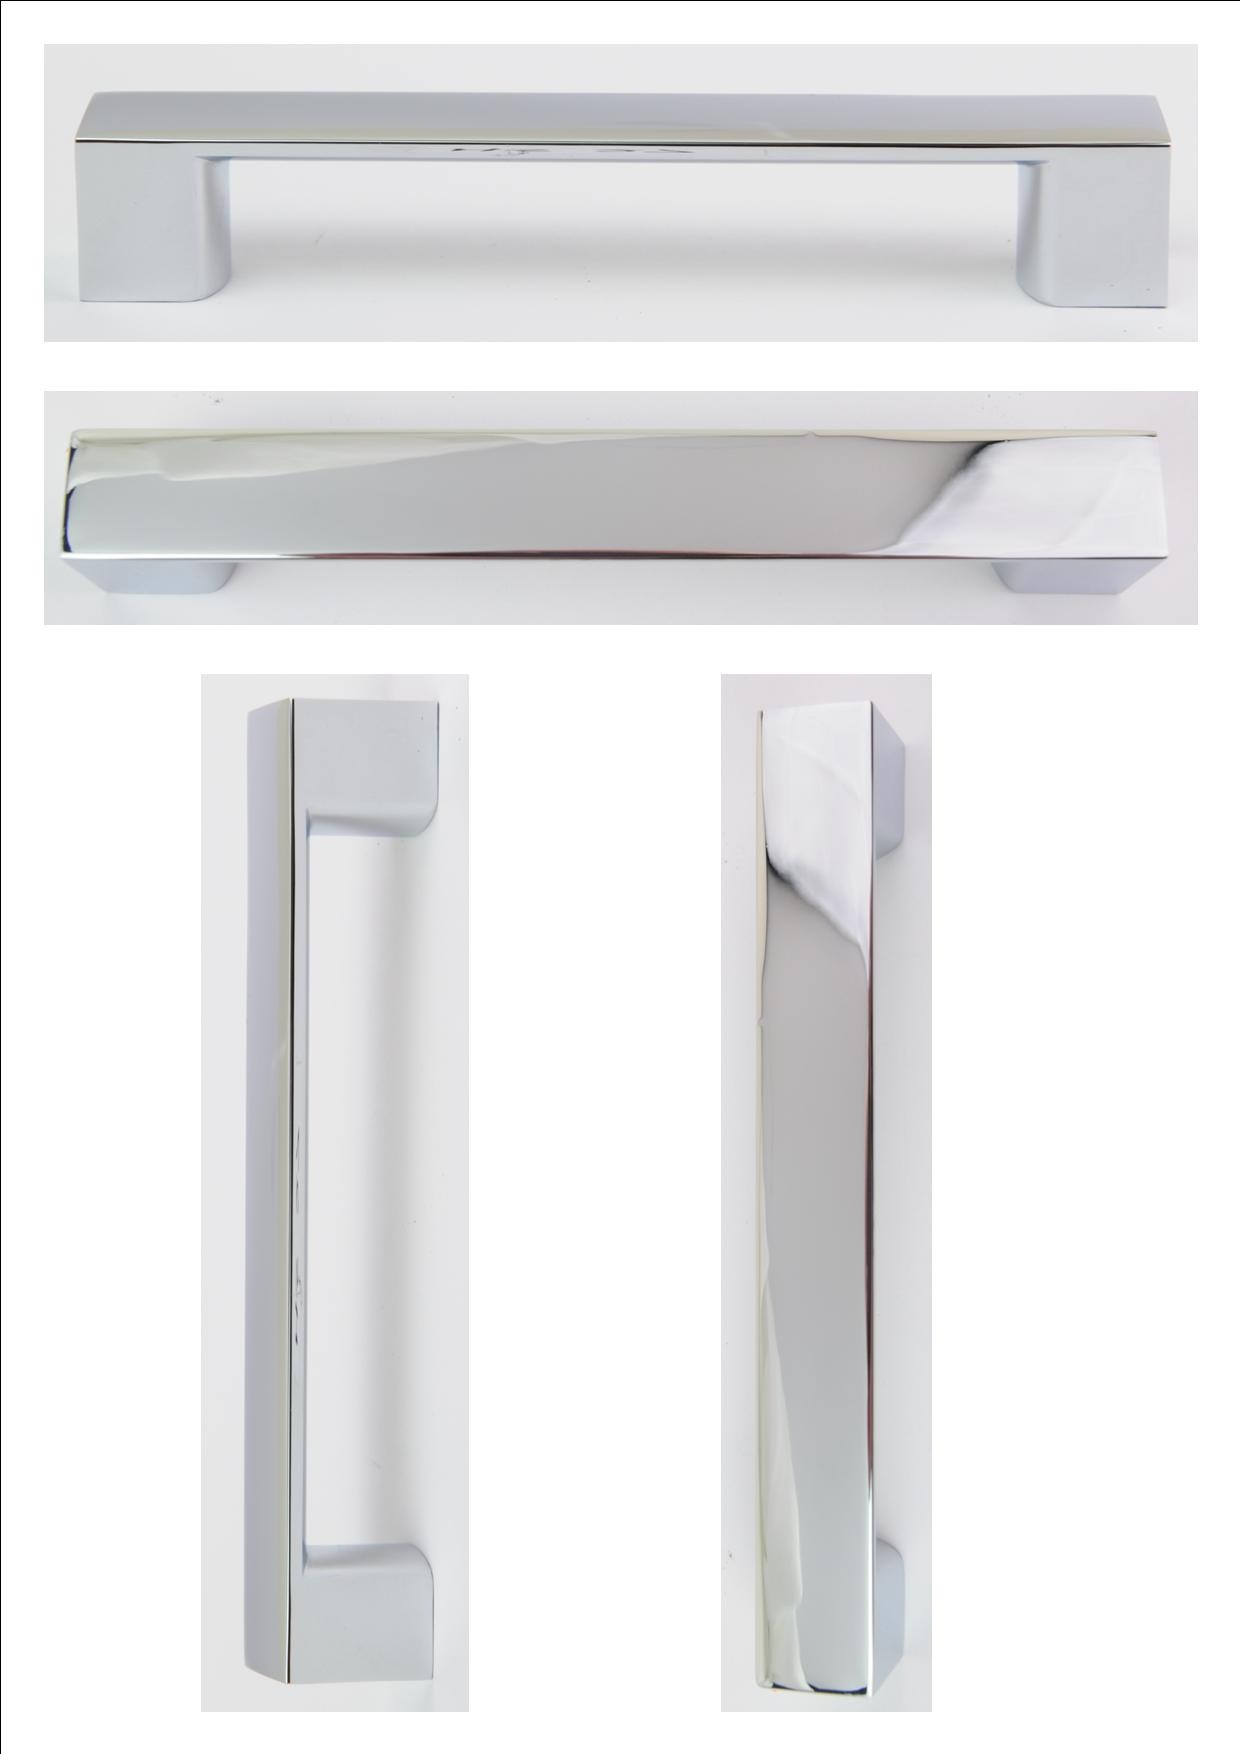 CHROME D HANDLE 160MM (128MM CENTRES) - OLD CODE HS27